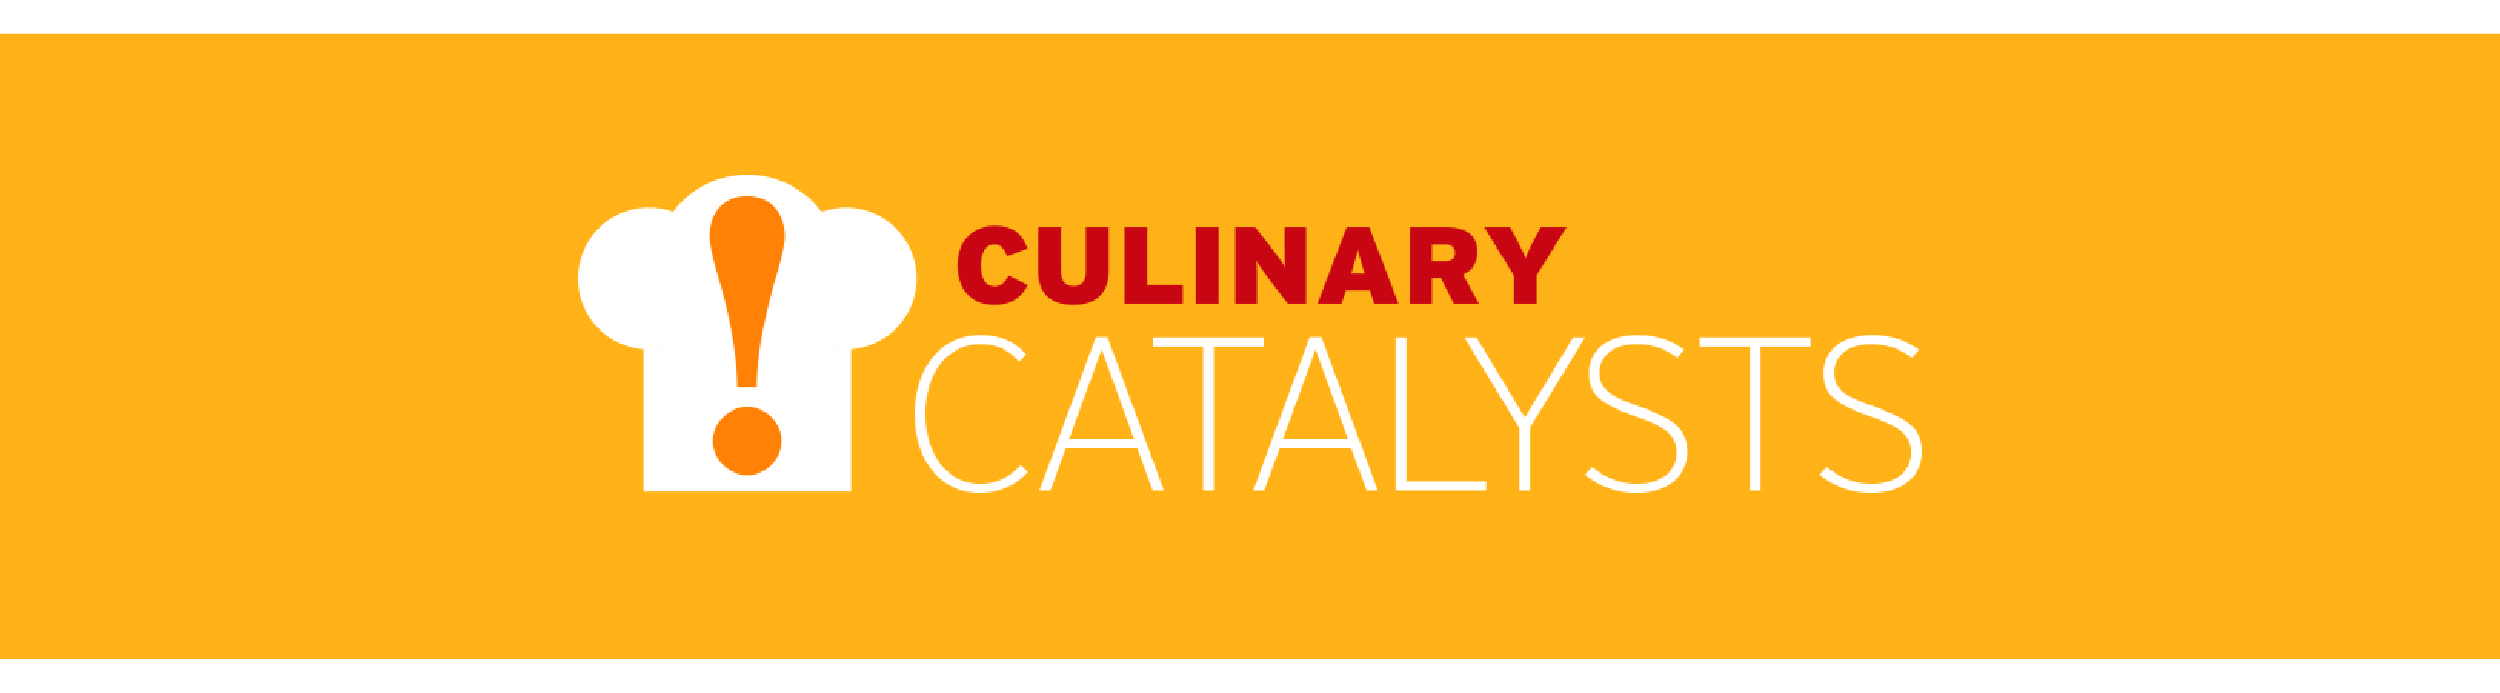 Culinary Catalysts Website Banner 1200x300.jpg